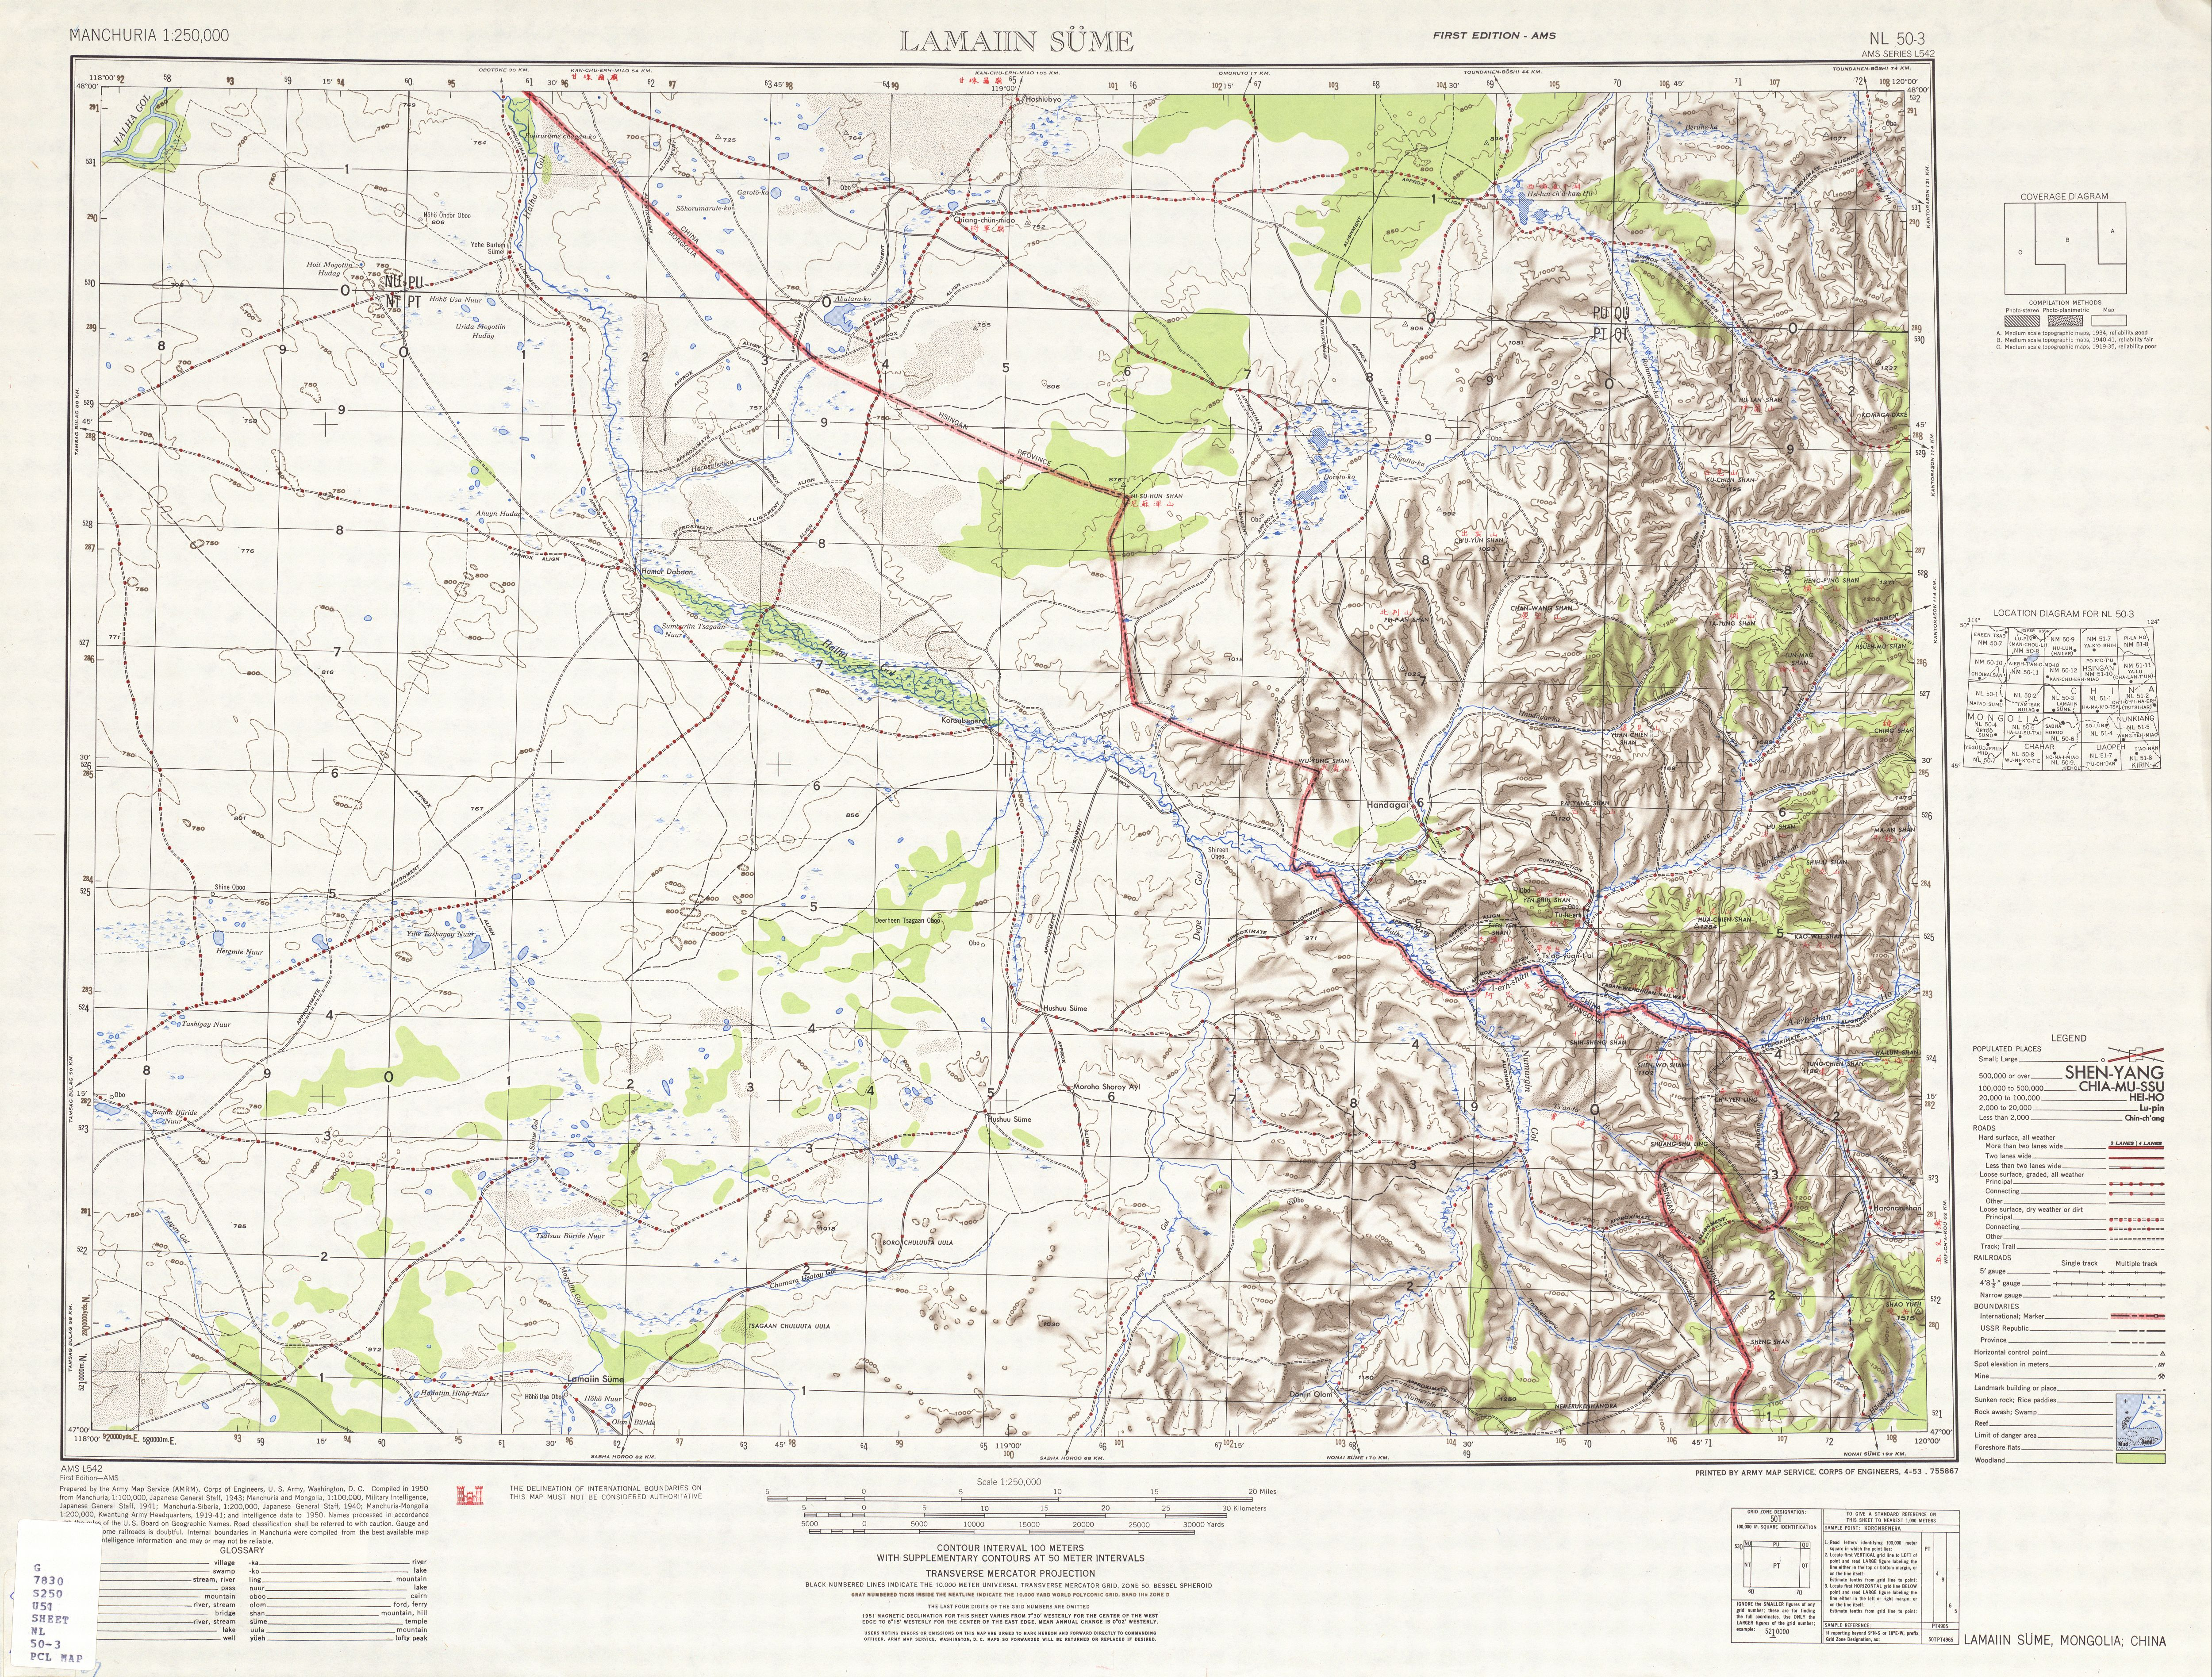 Topography Map Of Us.Manchuria Ams Topographic Maps Perry Castaneda Map Collection Ut